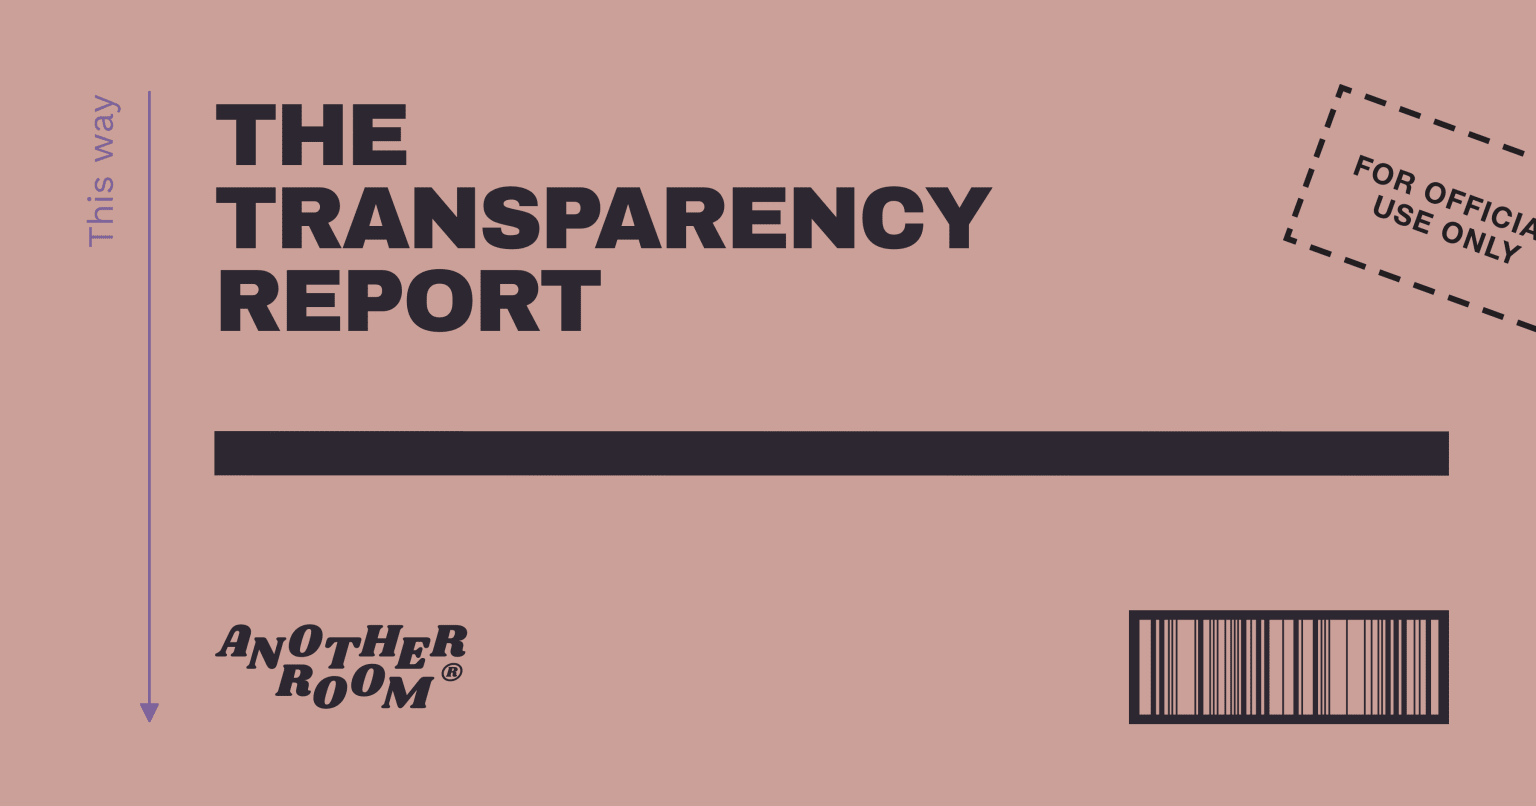 Another Room – The Transparency Report